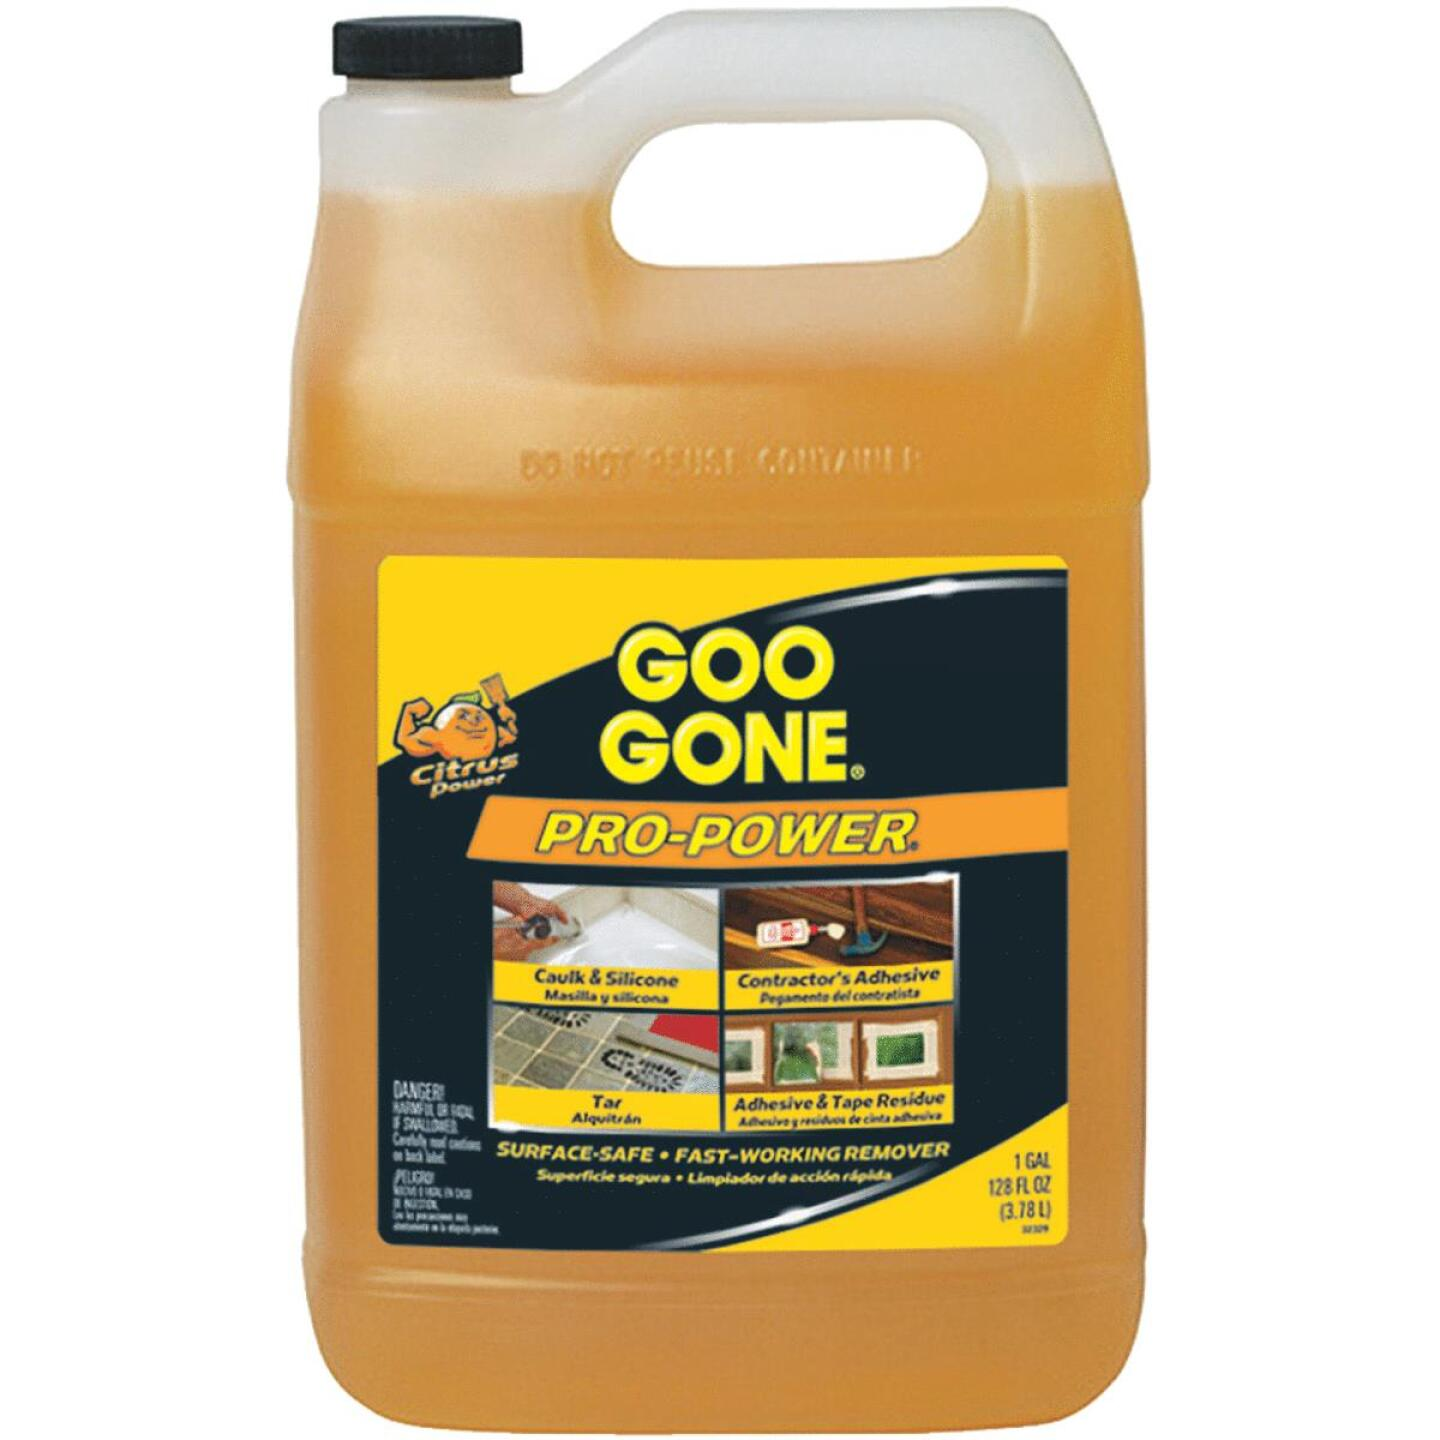 Goo Gone 1 Gal. Pro-Power Adhesive Remover Image 336